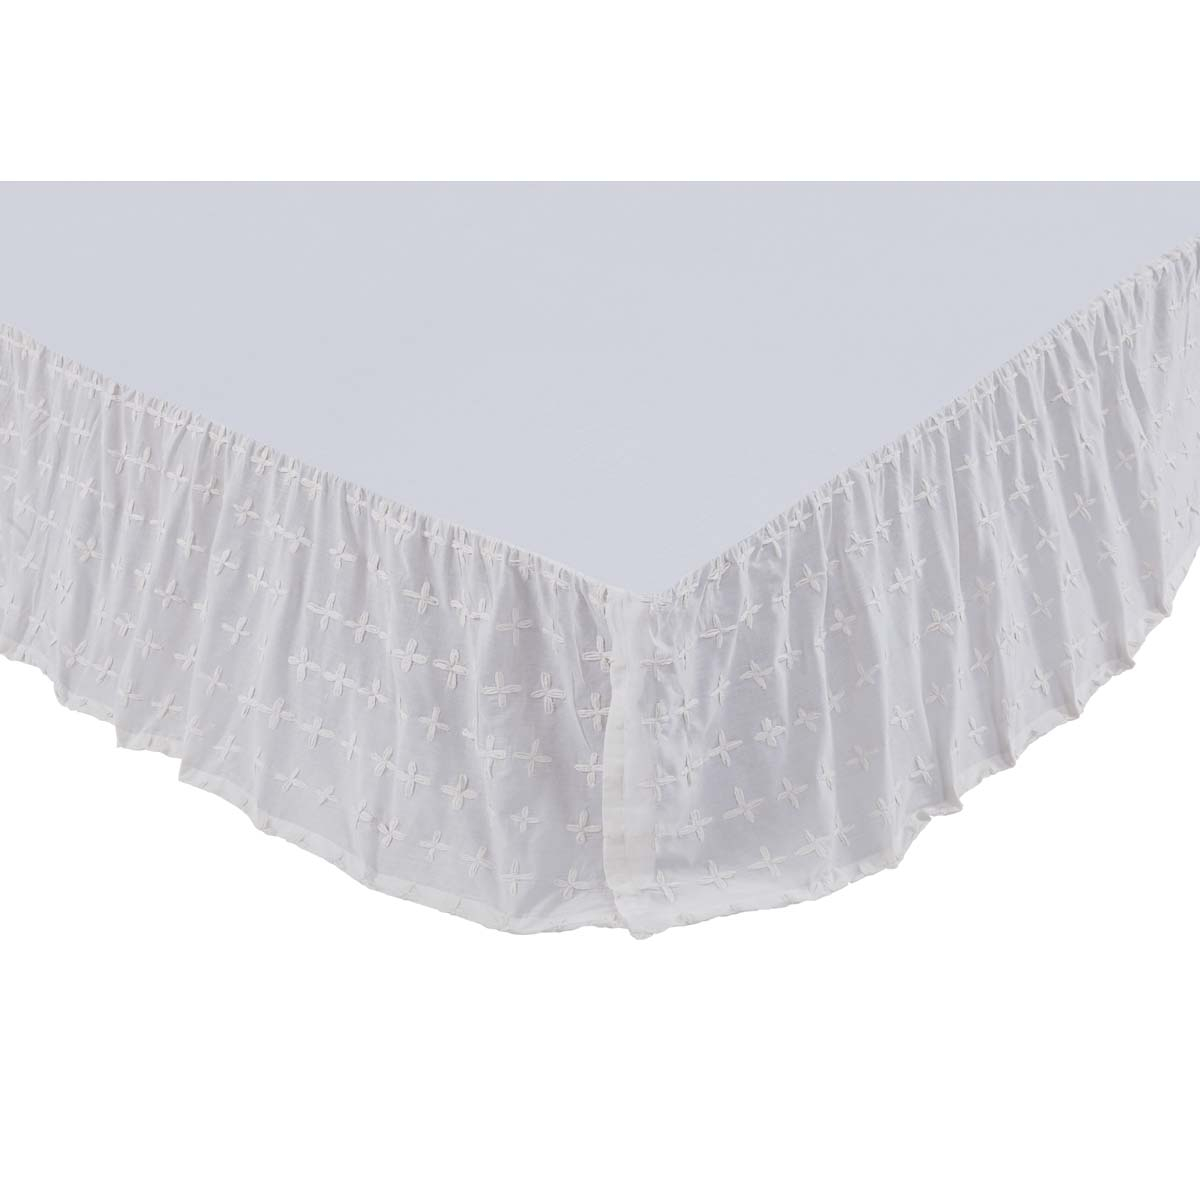 Willow White King Bed Skirt 78x80x16